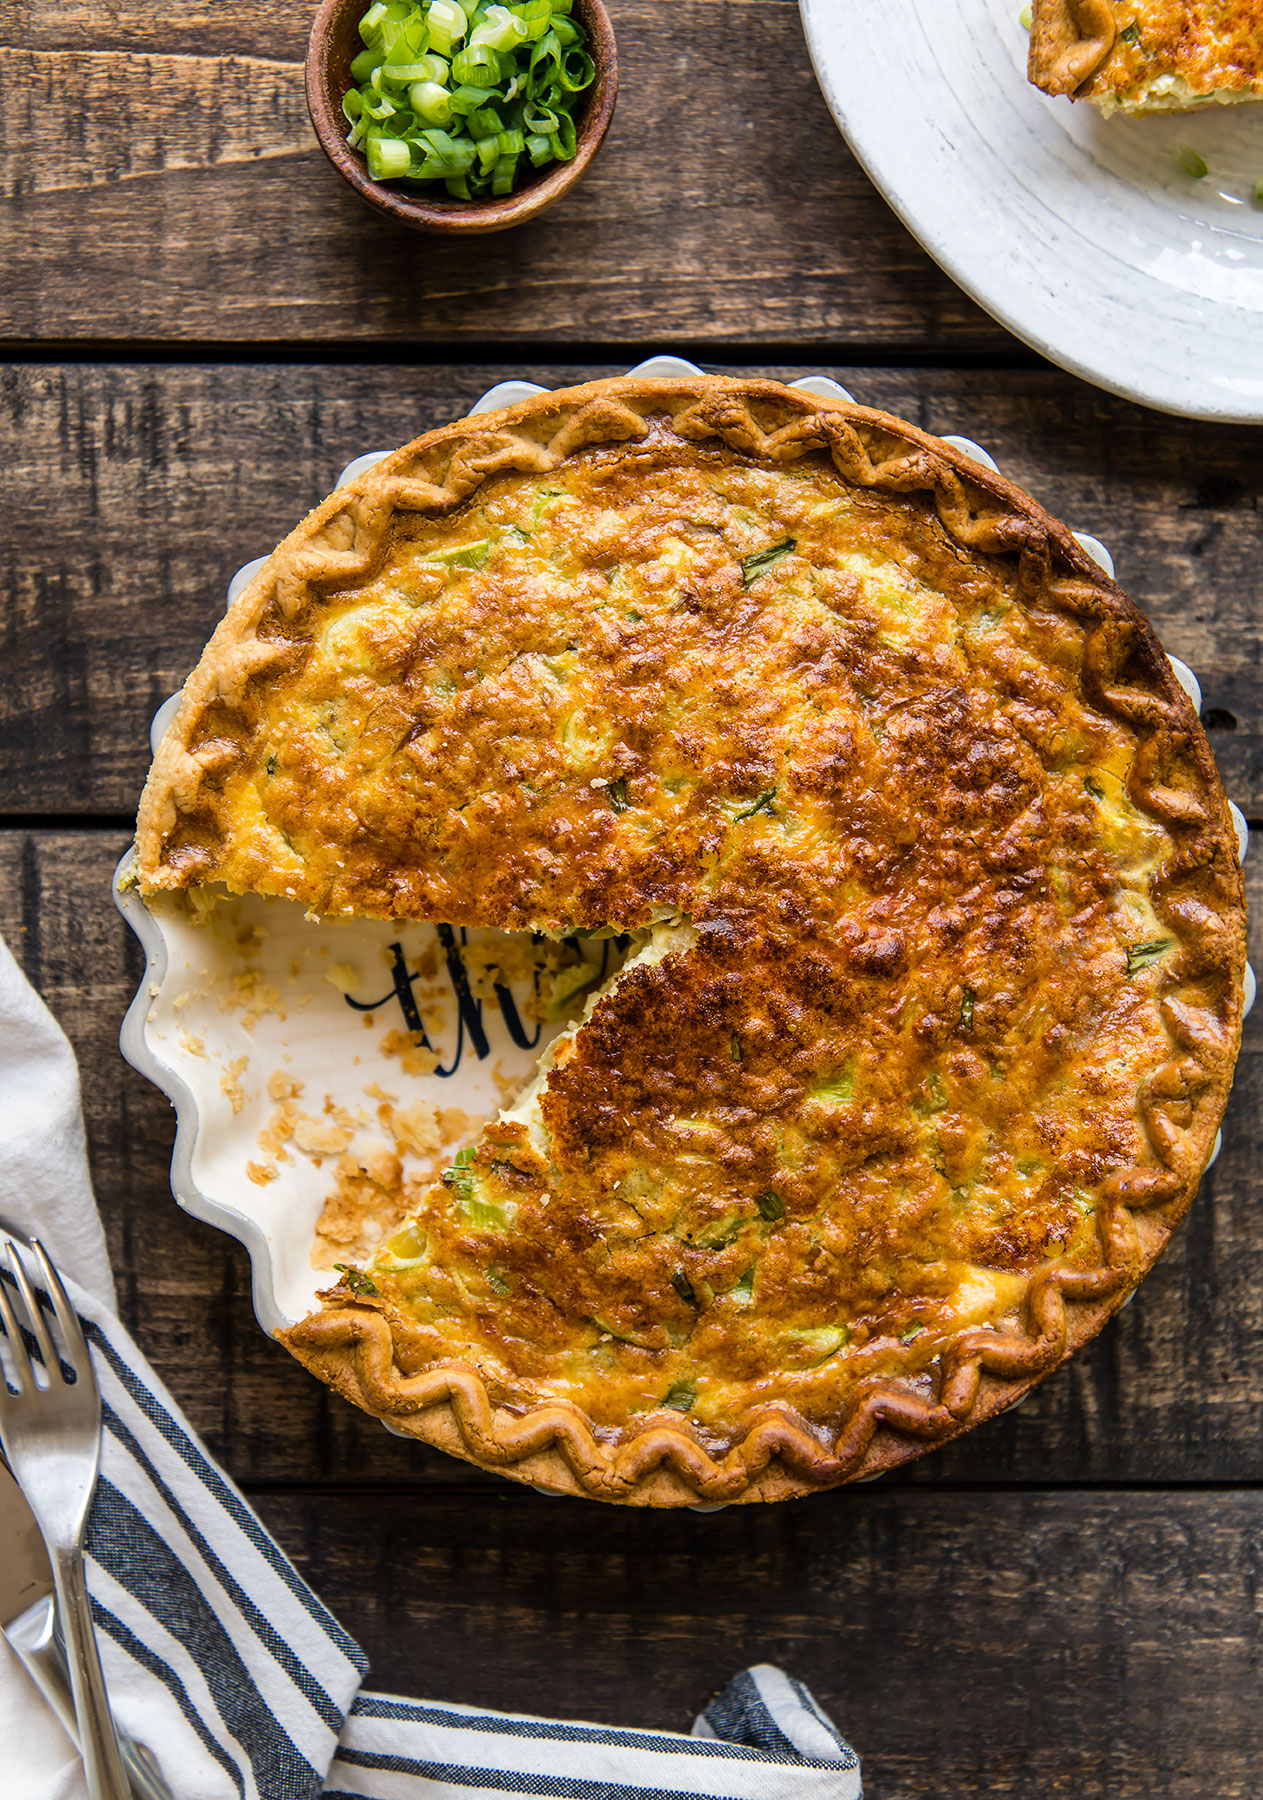 Green Chile & Cheese Quiche